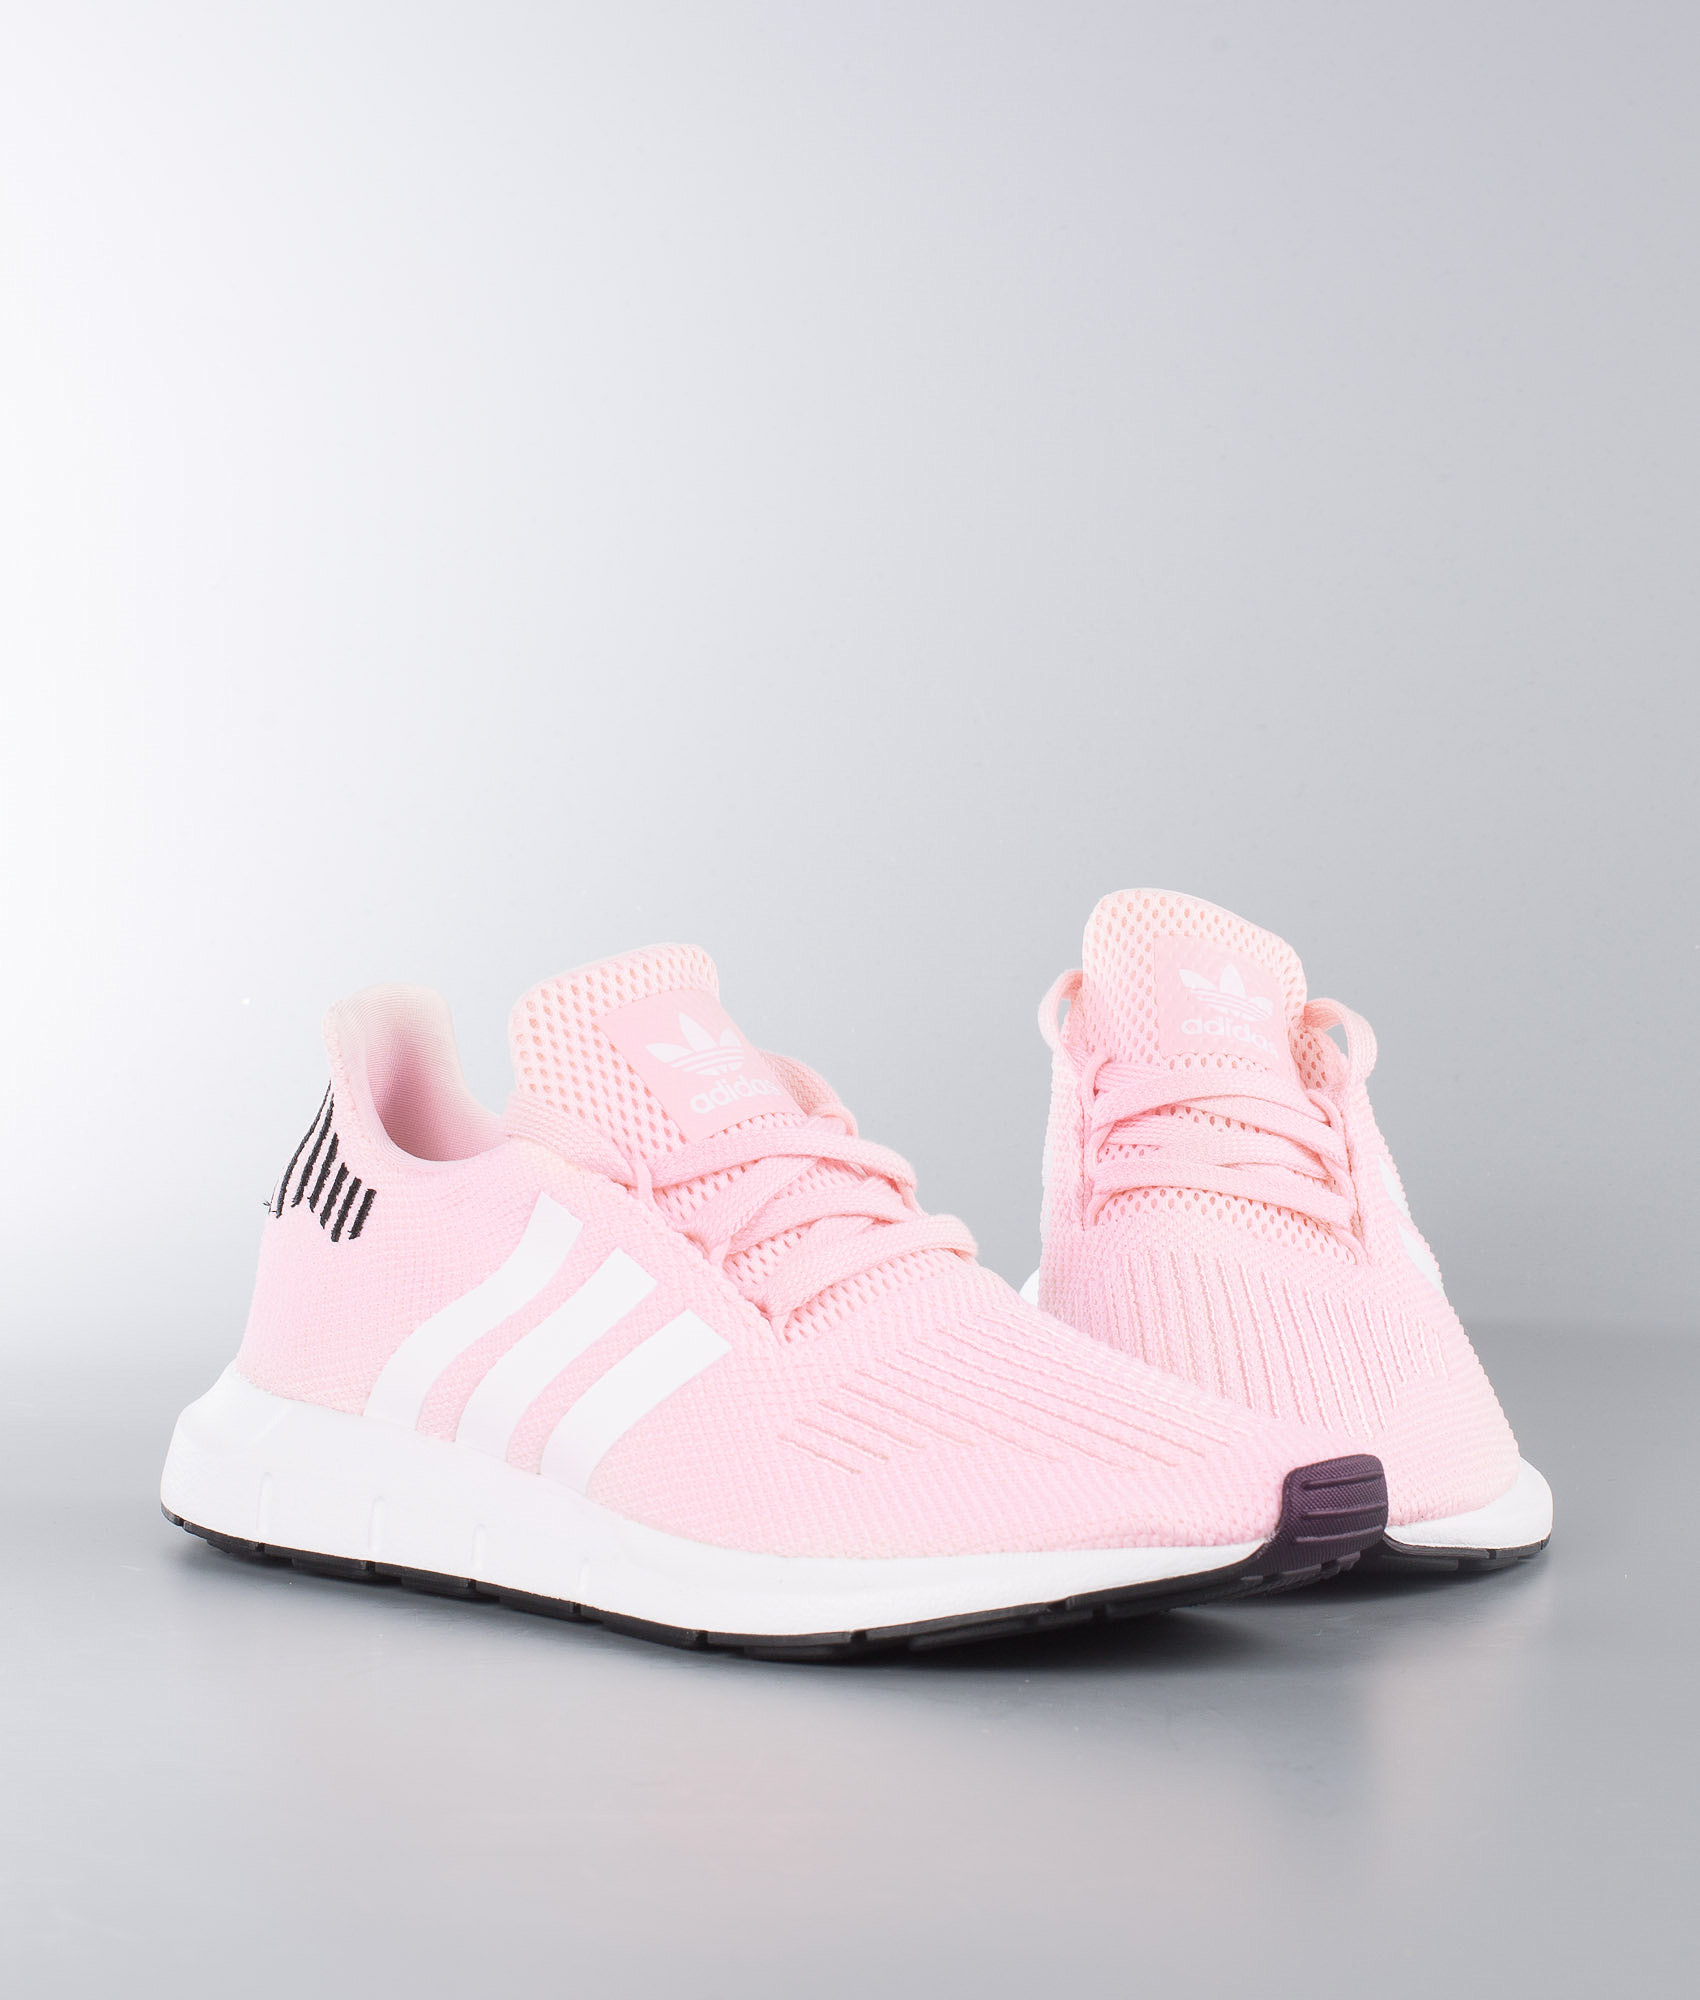 f37153582834a Adidas Originals Swift Run W Shoes Ice Pink Ftwr White Core Black ...